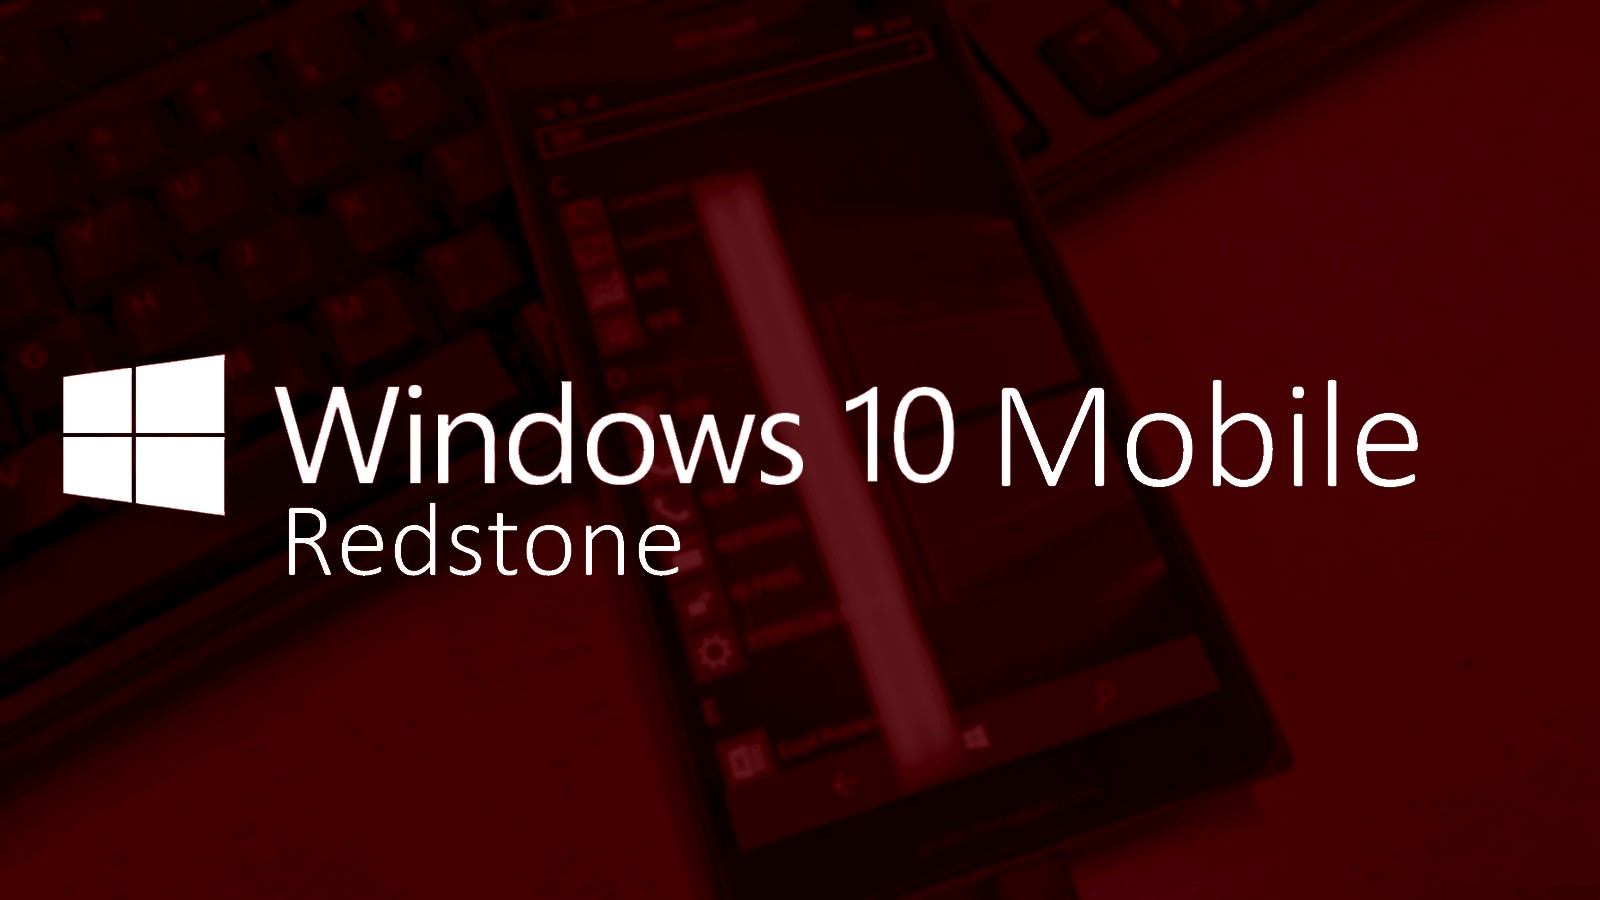 Windows 10 Mobile Redstone